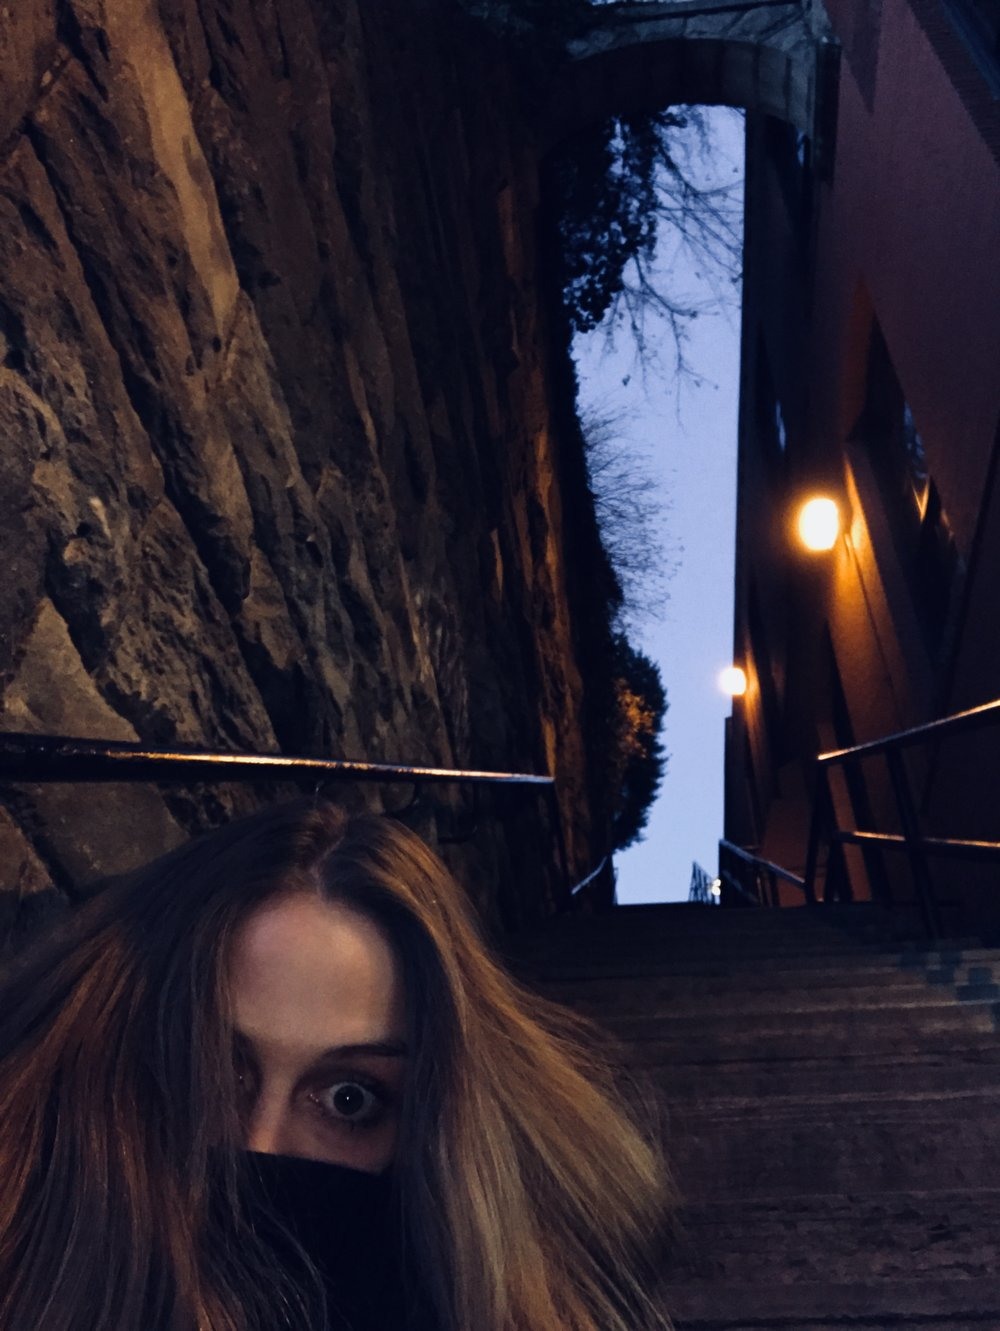 THE EXORCIST STEPS, GEORGETOWN WASHINGTON DC 2016